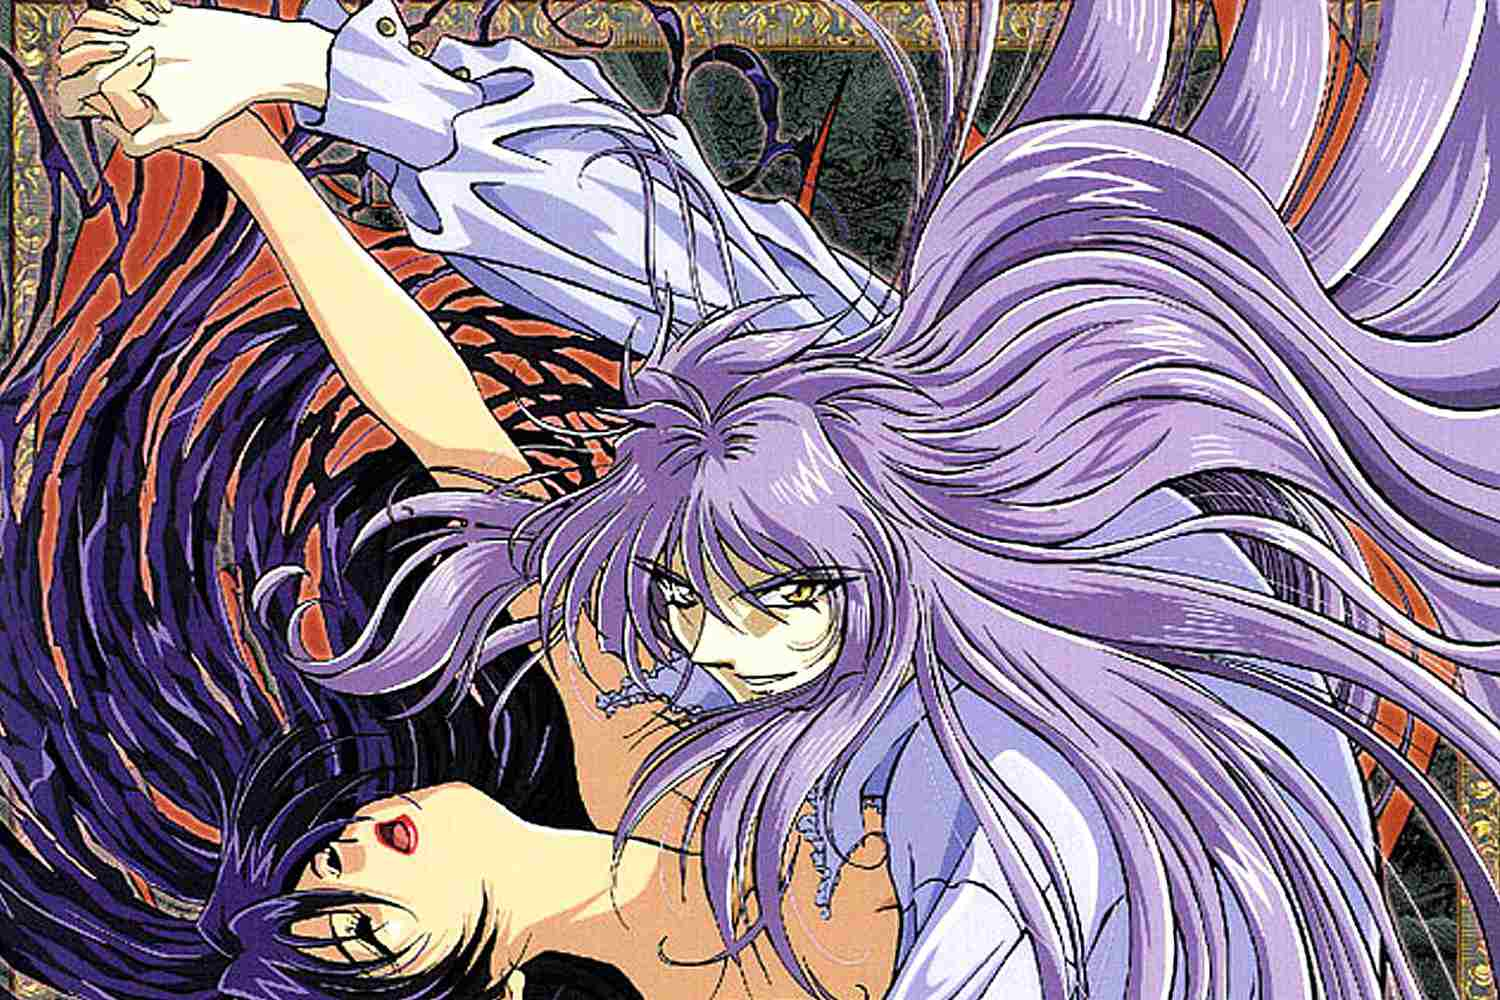 Nightwalker: The Midnight Detective Anime Series cover